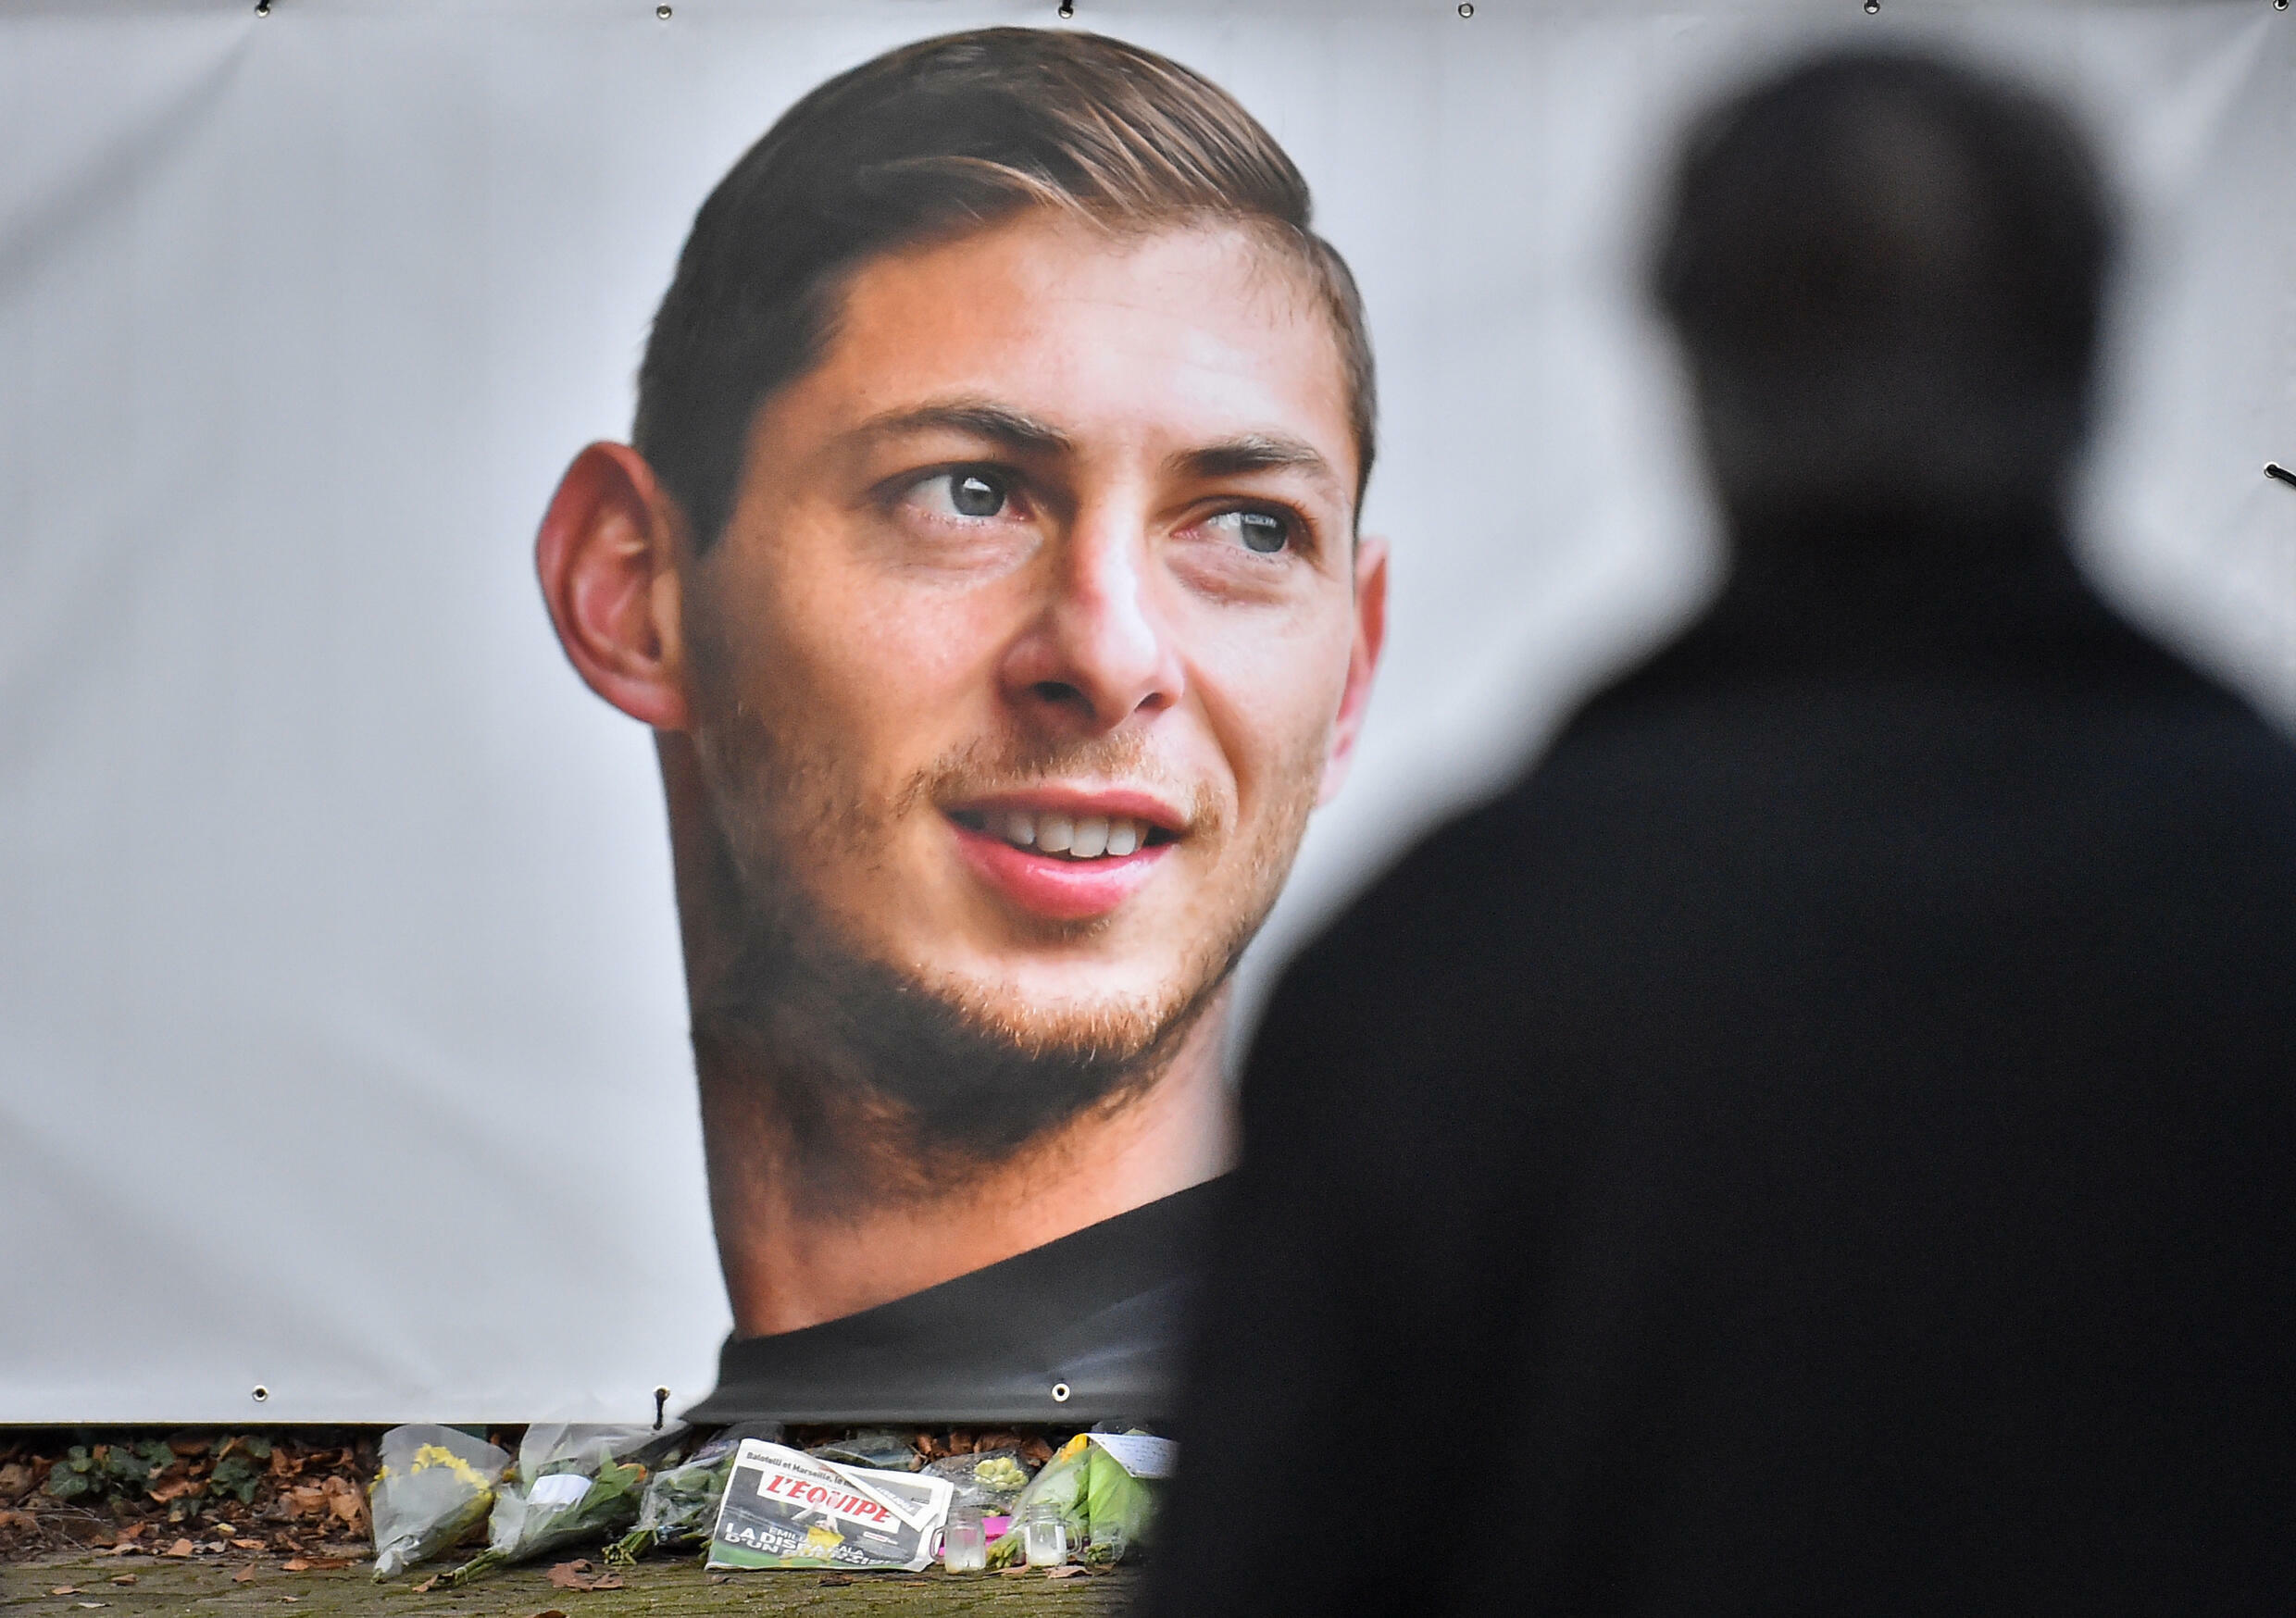 A portrait of Emiliano Sala displayed in front of the entrance of the FC Nantes football club training centre in 2019 after he died in a plane crash